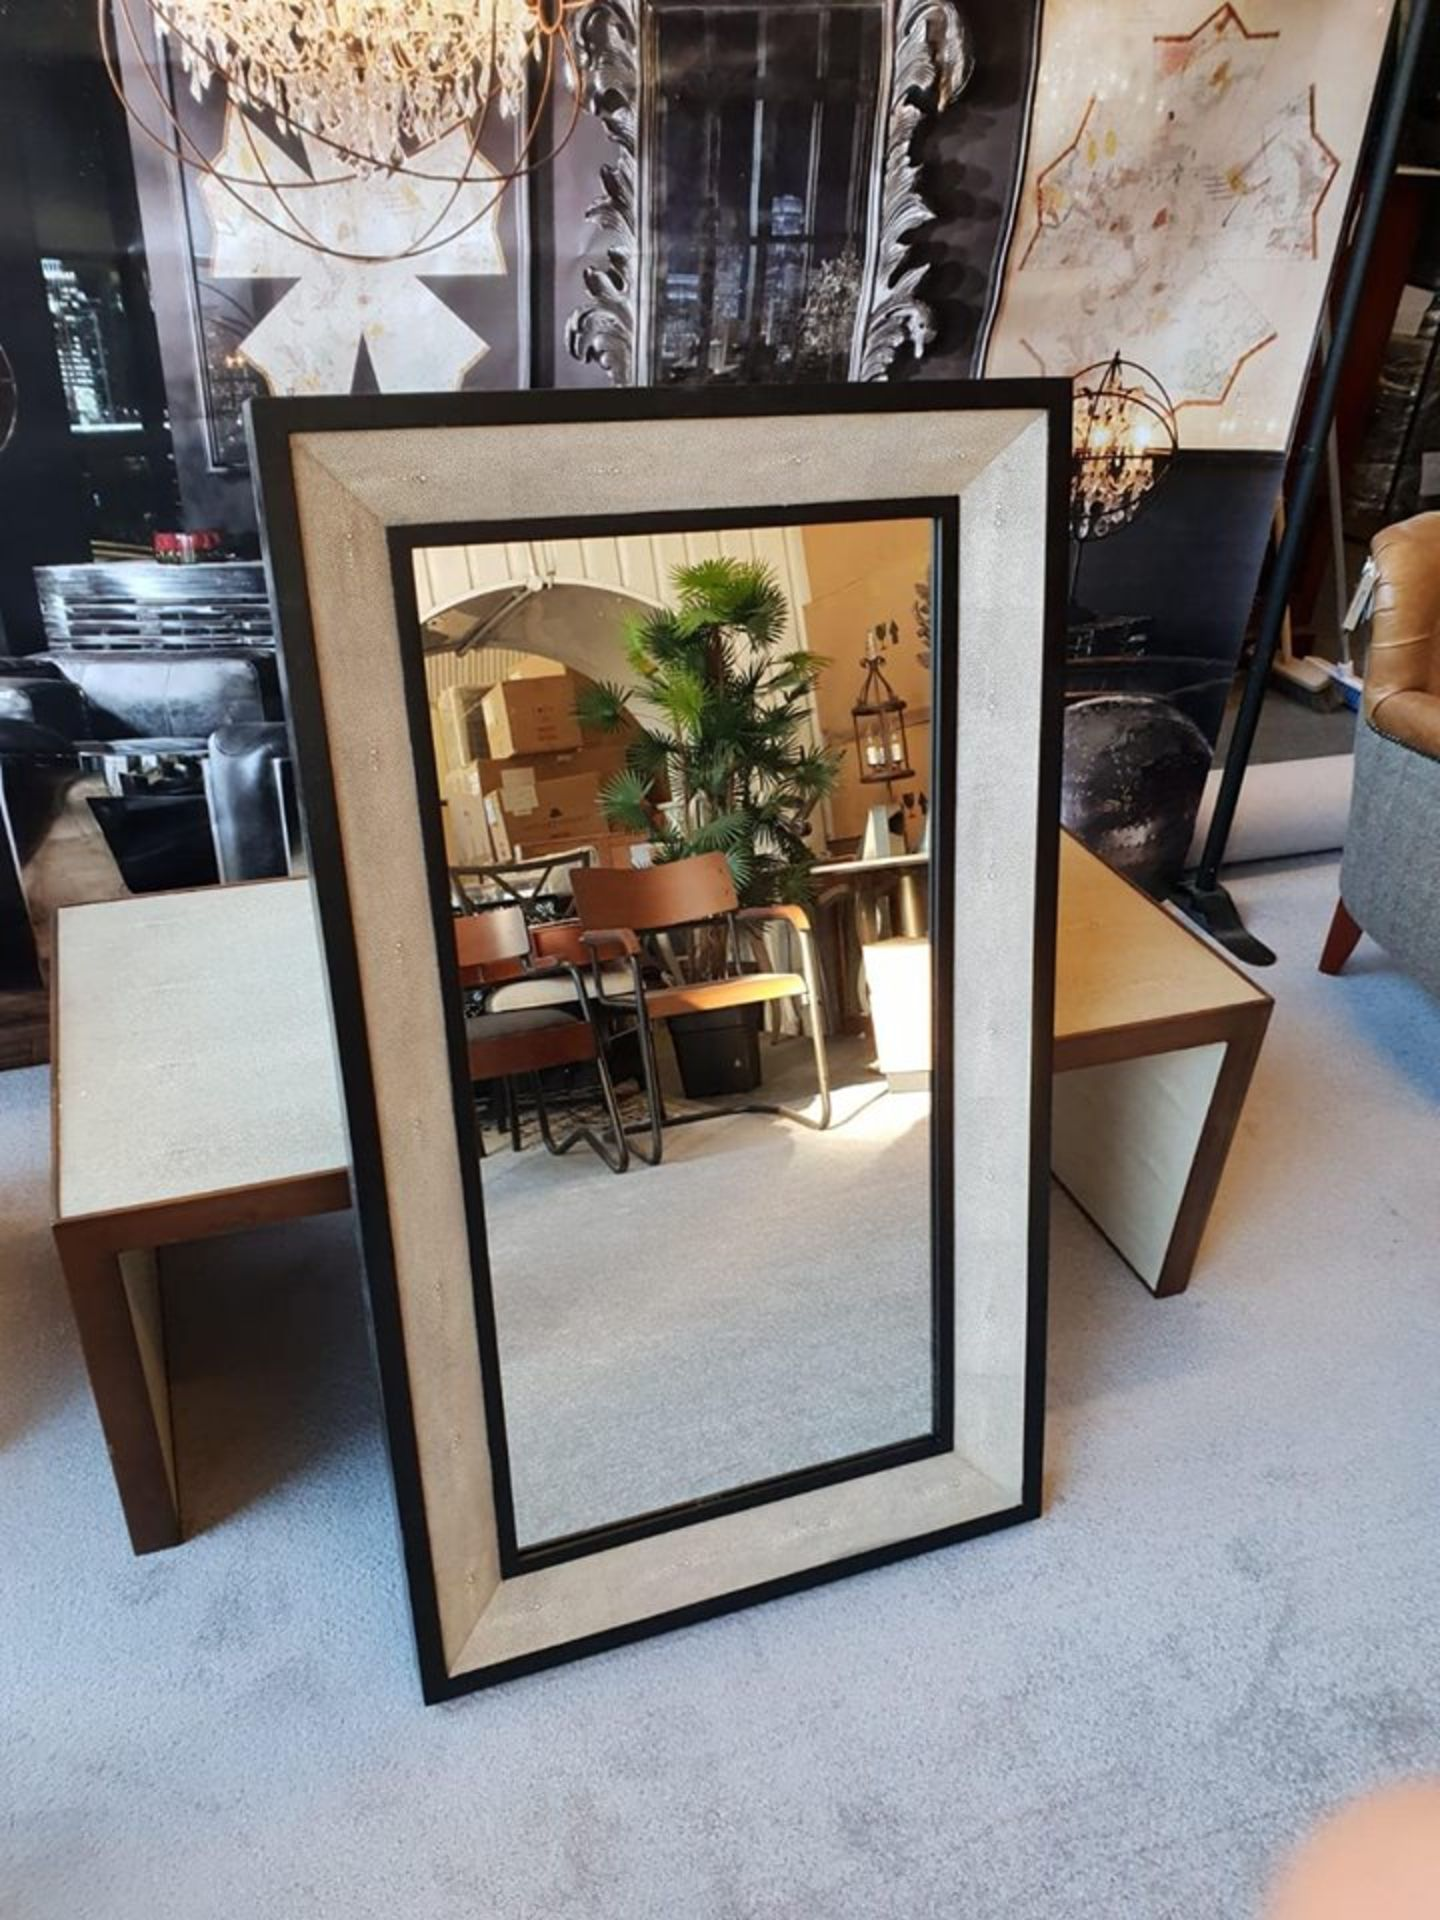 Lot 40 - Hutchinson Rectangular Mirror The Mirror Is Panelled With Distinctive Shagreen Hide Revealing An